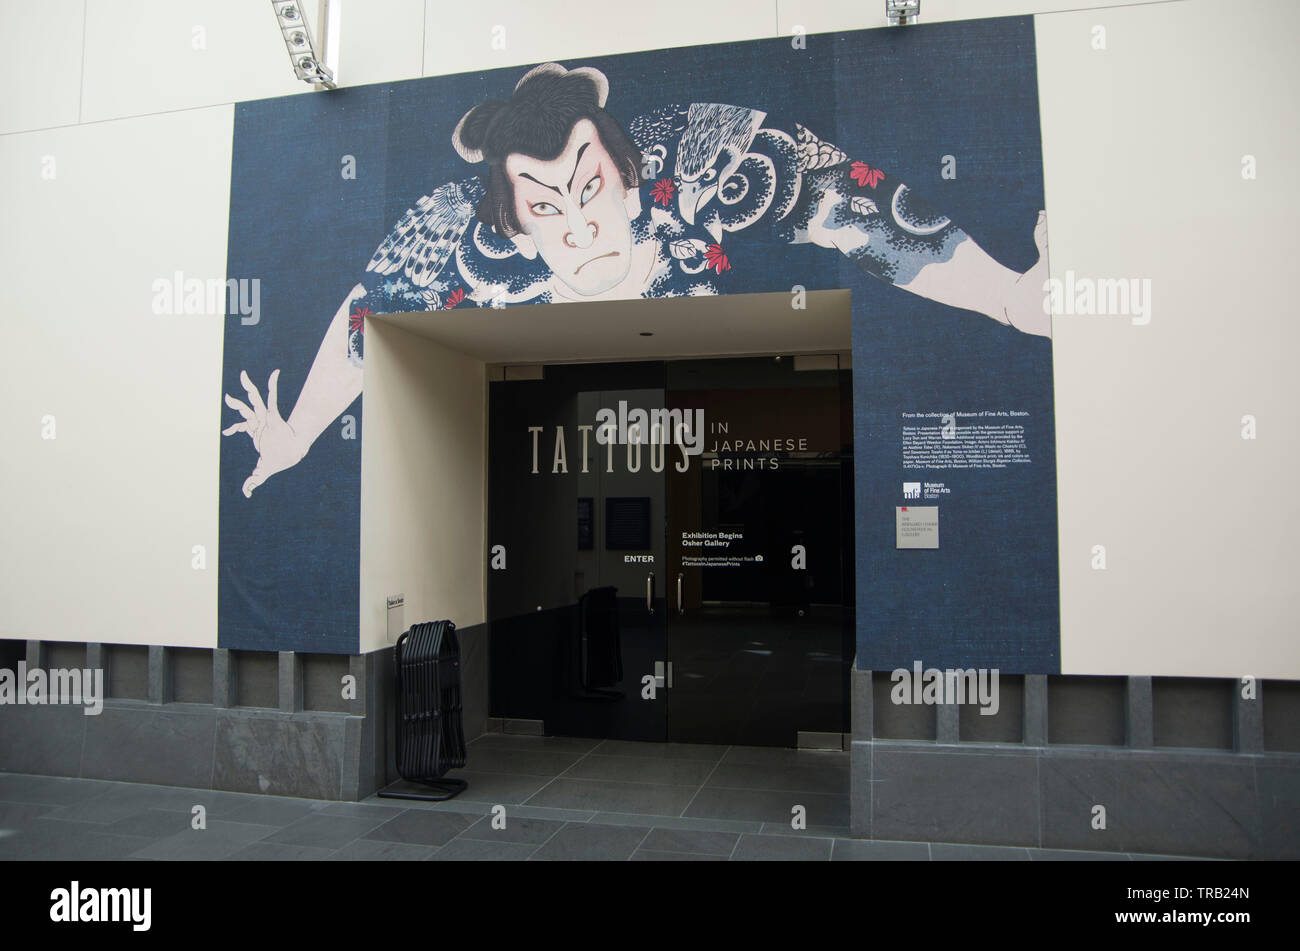 The Asian Art Museum in San Francisco has a new exhibit about Japanese tattoos in prints throughout history. - Stock Image